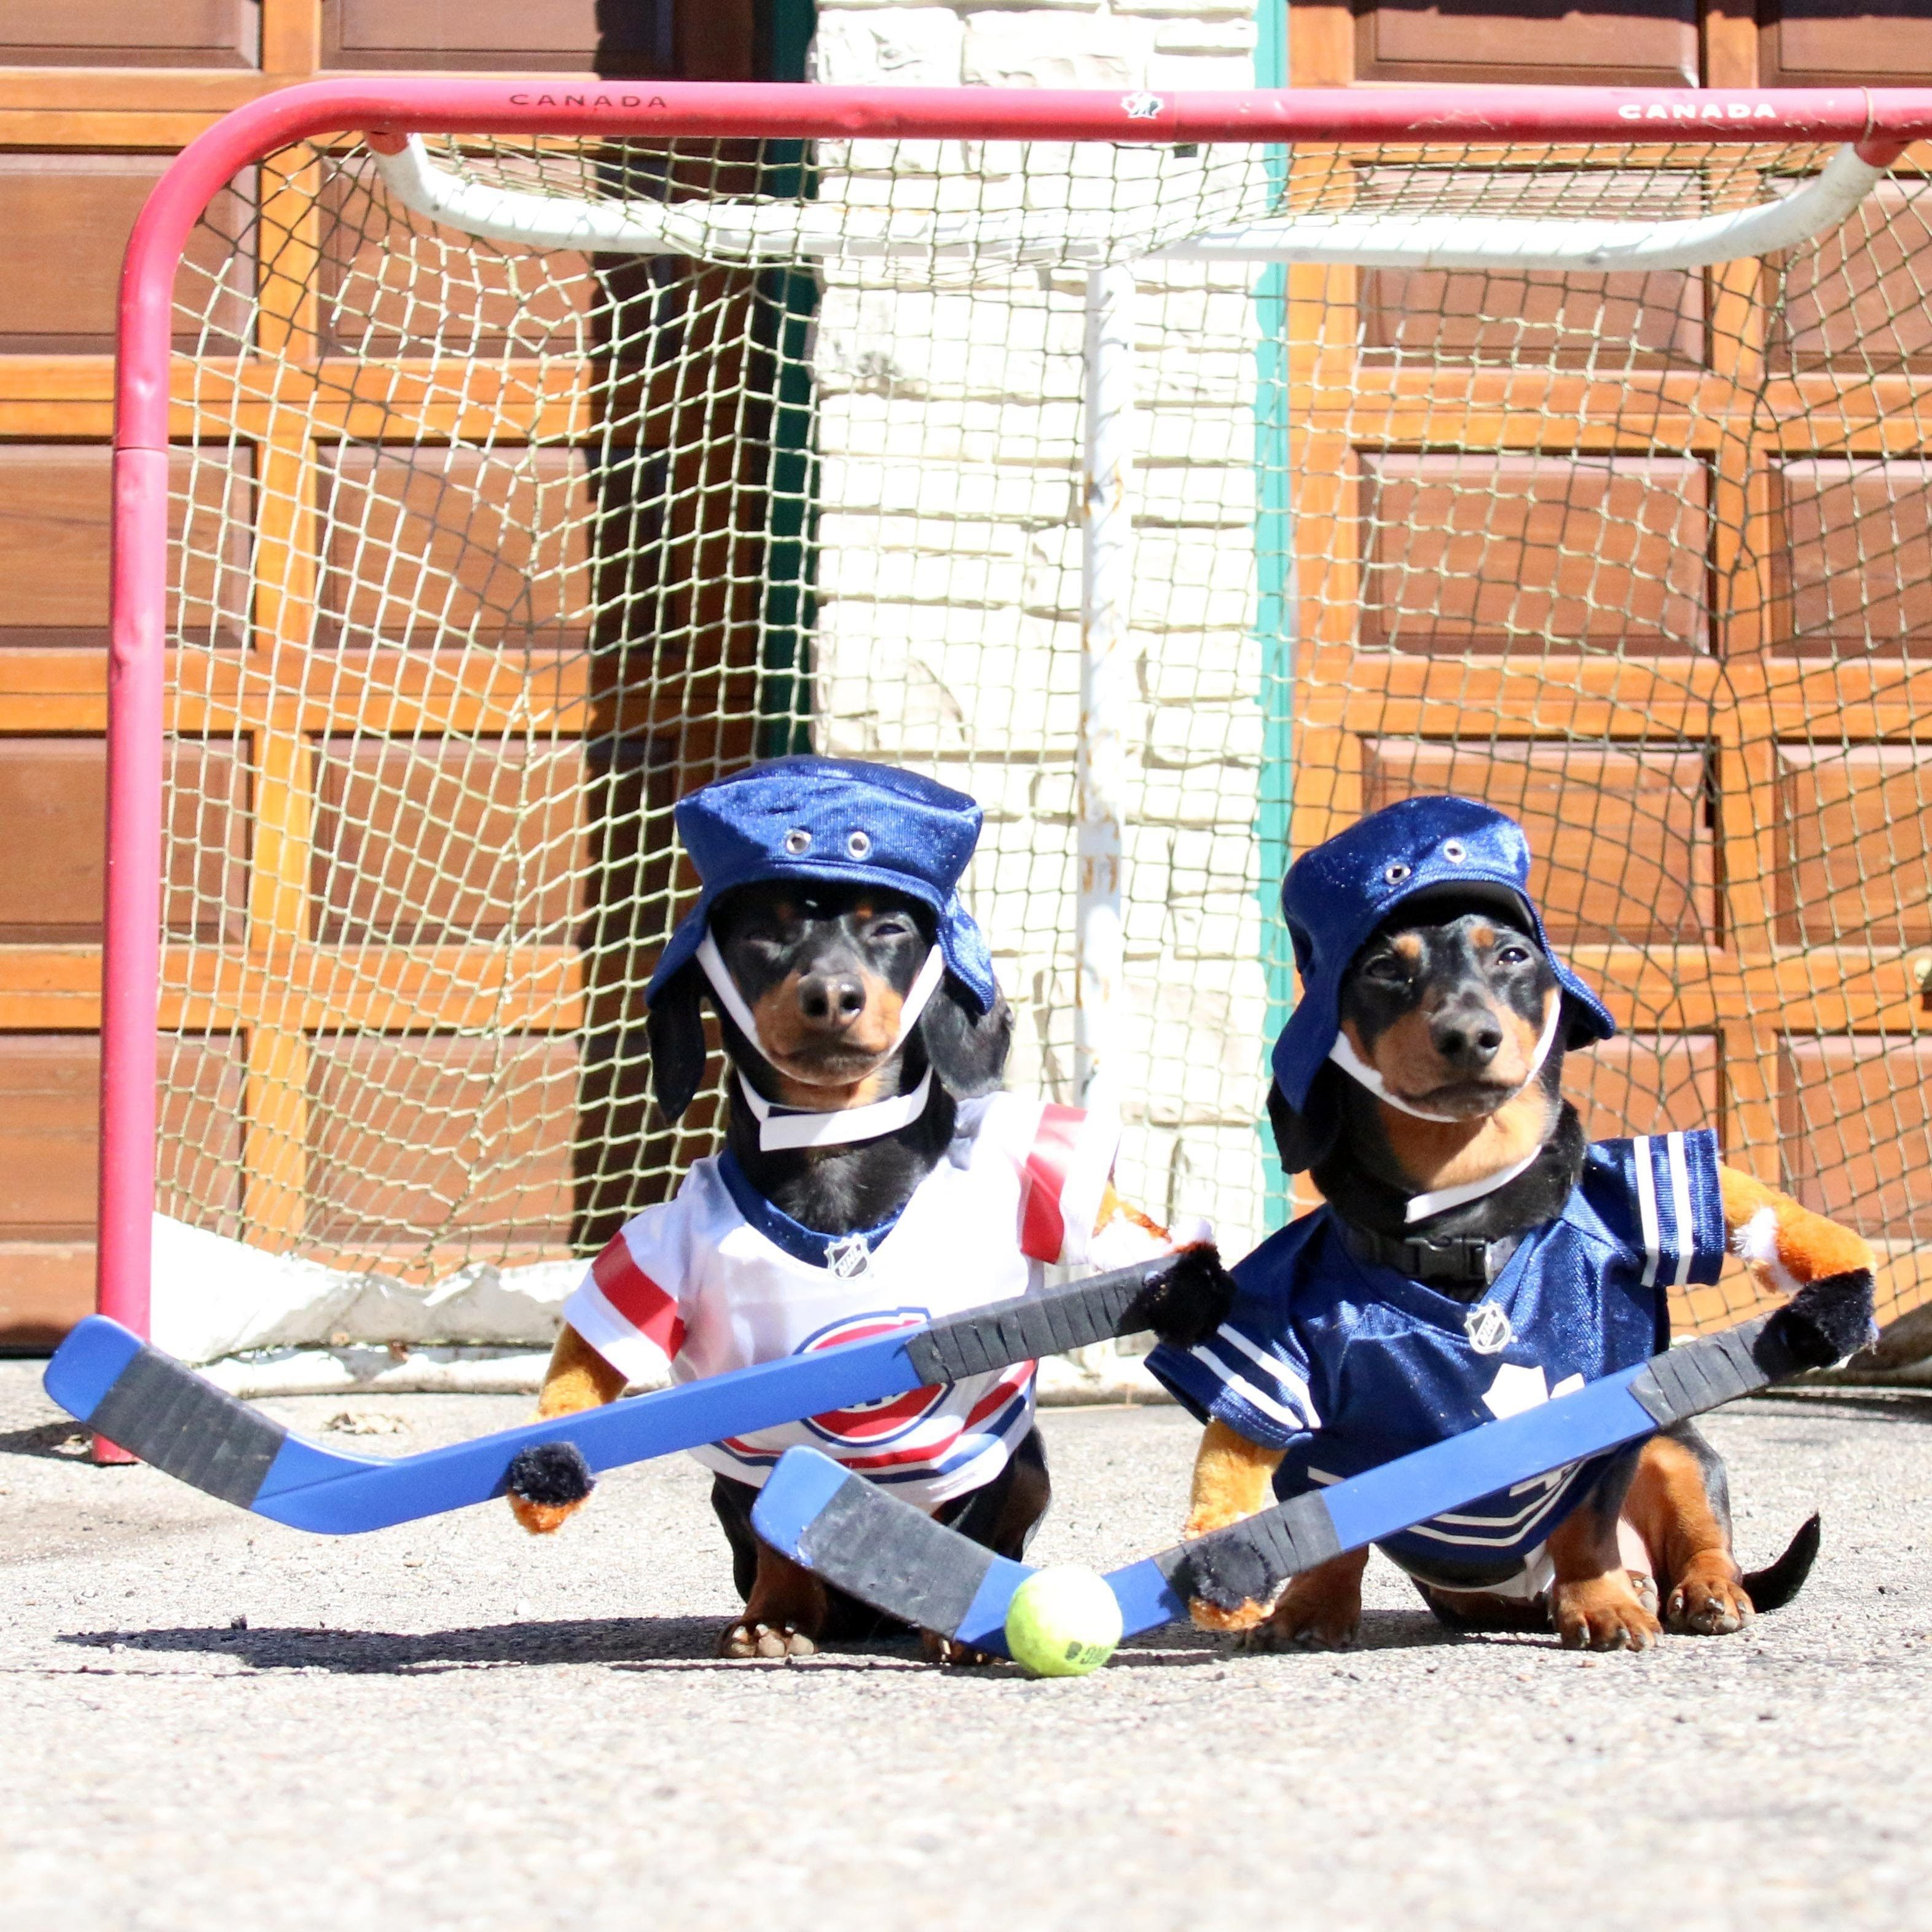 Dachshunds Playing Hockey Is Officially Cuter Than The NHL. - http://www.lifebuzz.com/hockey2/